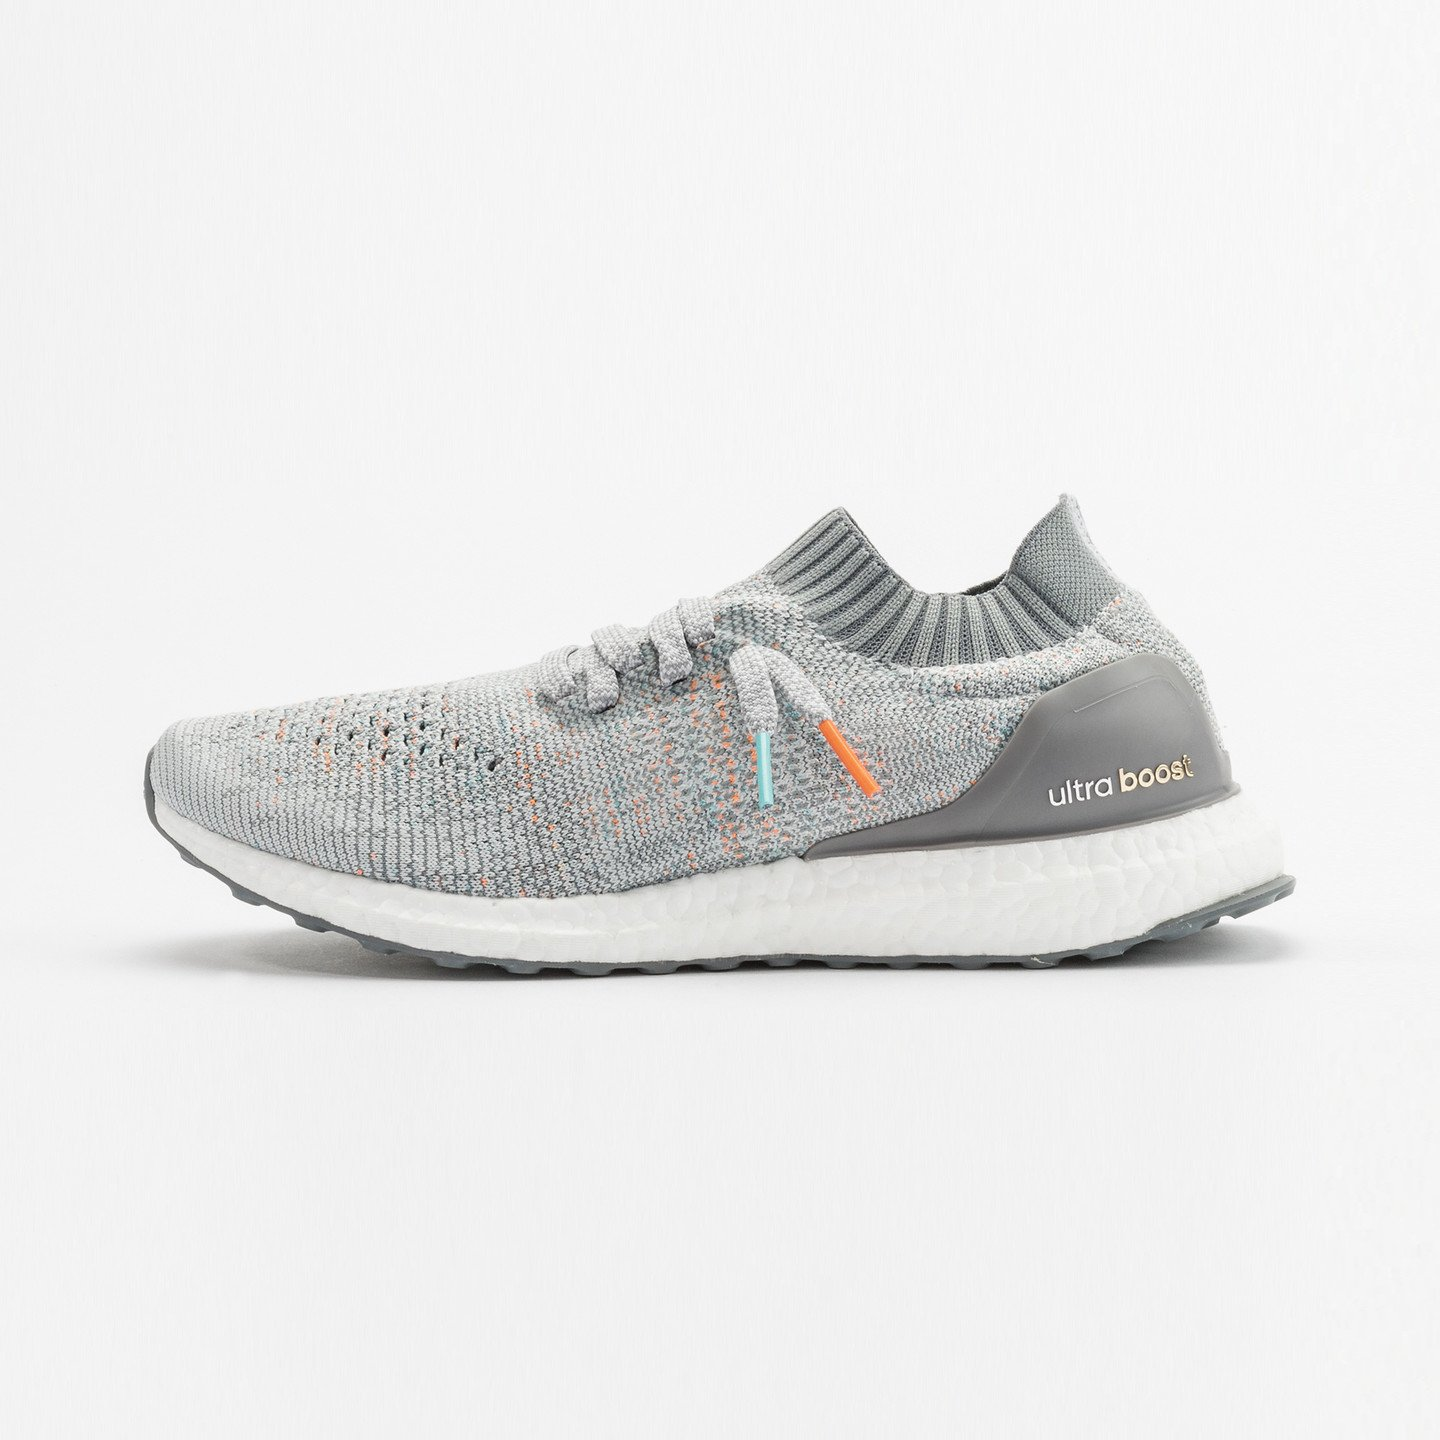 Adidas Ultra Boost Uncaged 'Miami Dolphins' Clear Grey / Mid Grey / Orange / Aqua BB4489-47.33